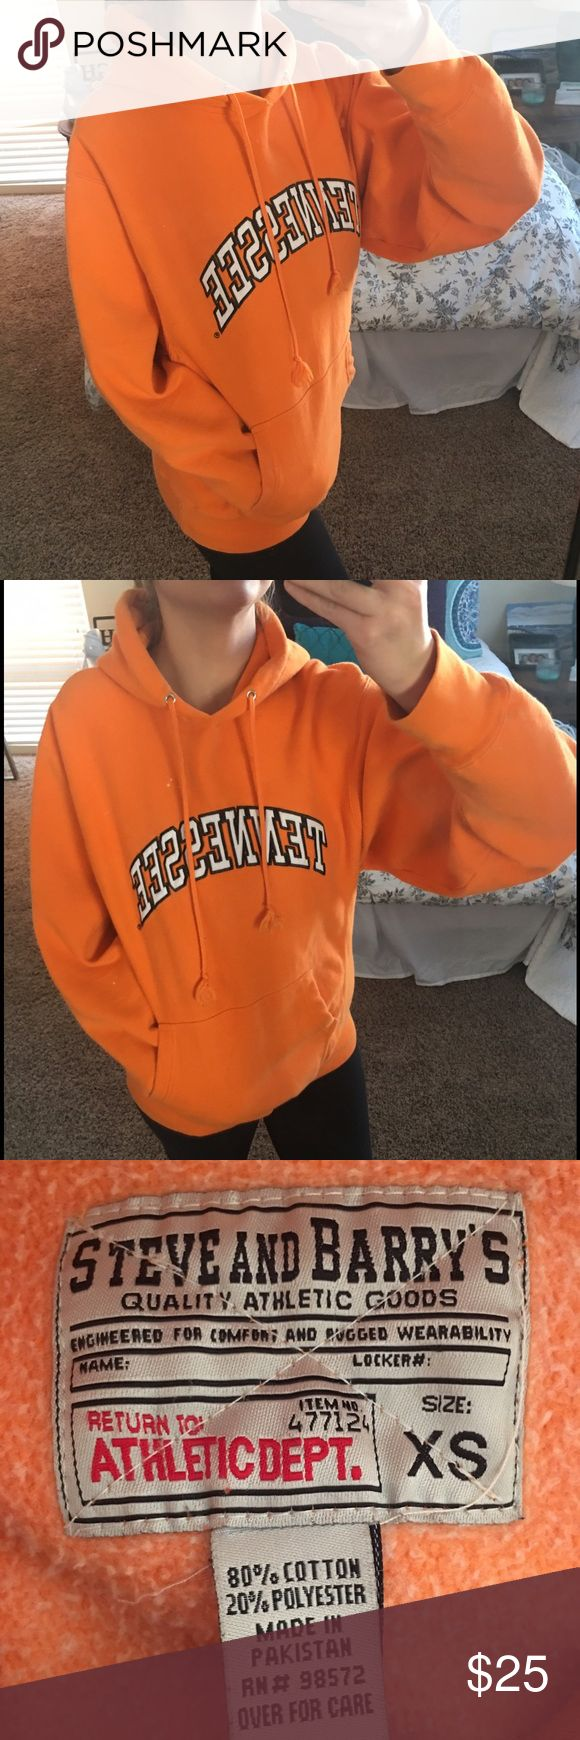 Tennessee Sweatshirt. Size XS but fits VERY LOOSE! 🍁🍁 Are you game day ready?! This University of TN sweatshirt will get you in the mood to tailgate in no time!! Size XS. Super comfy and great for those chilly fall days!  🍁🍁 Tops Sweatshirts & Hoodies